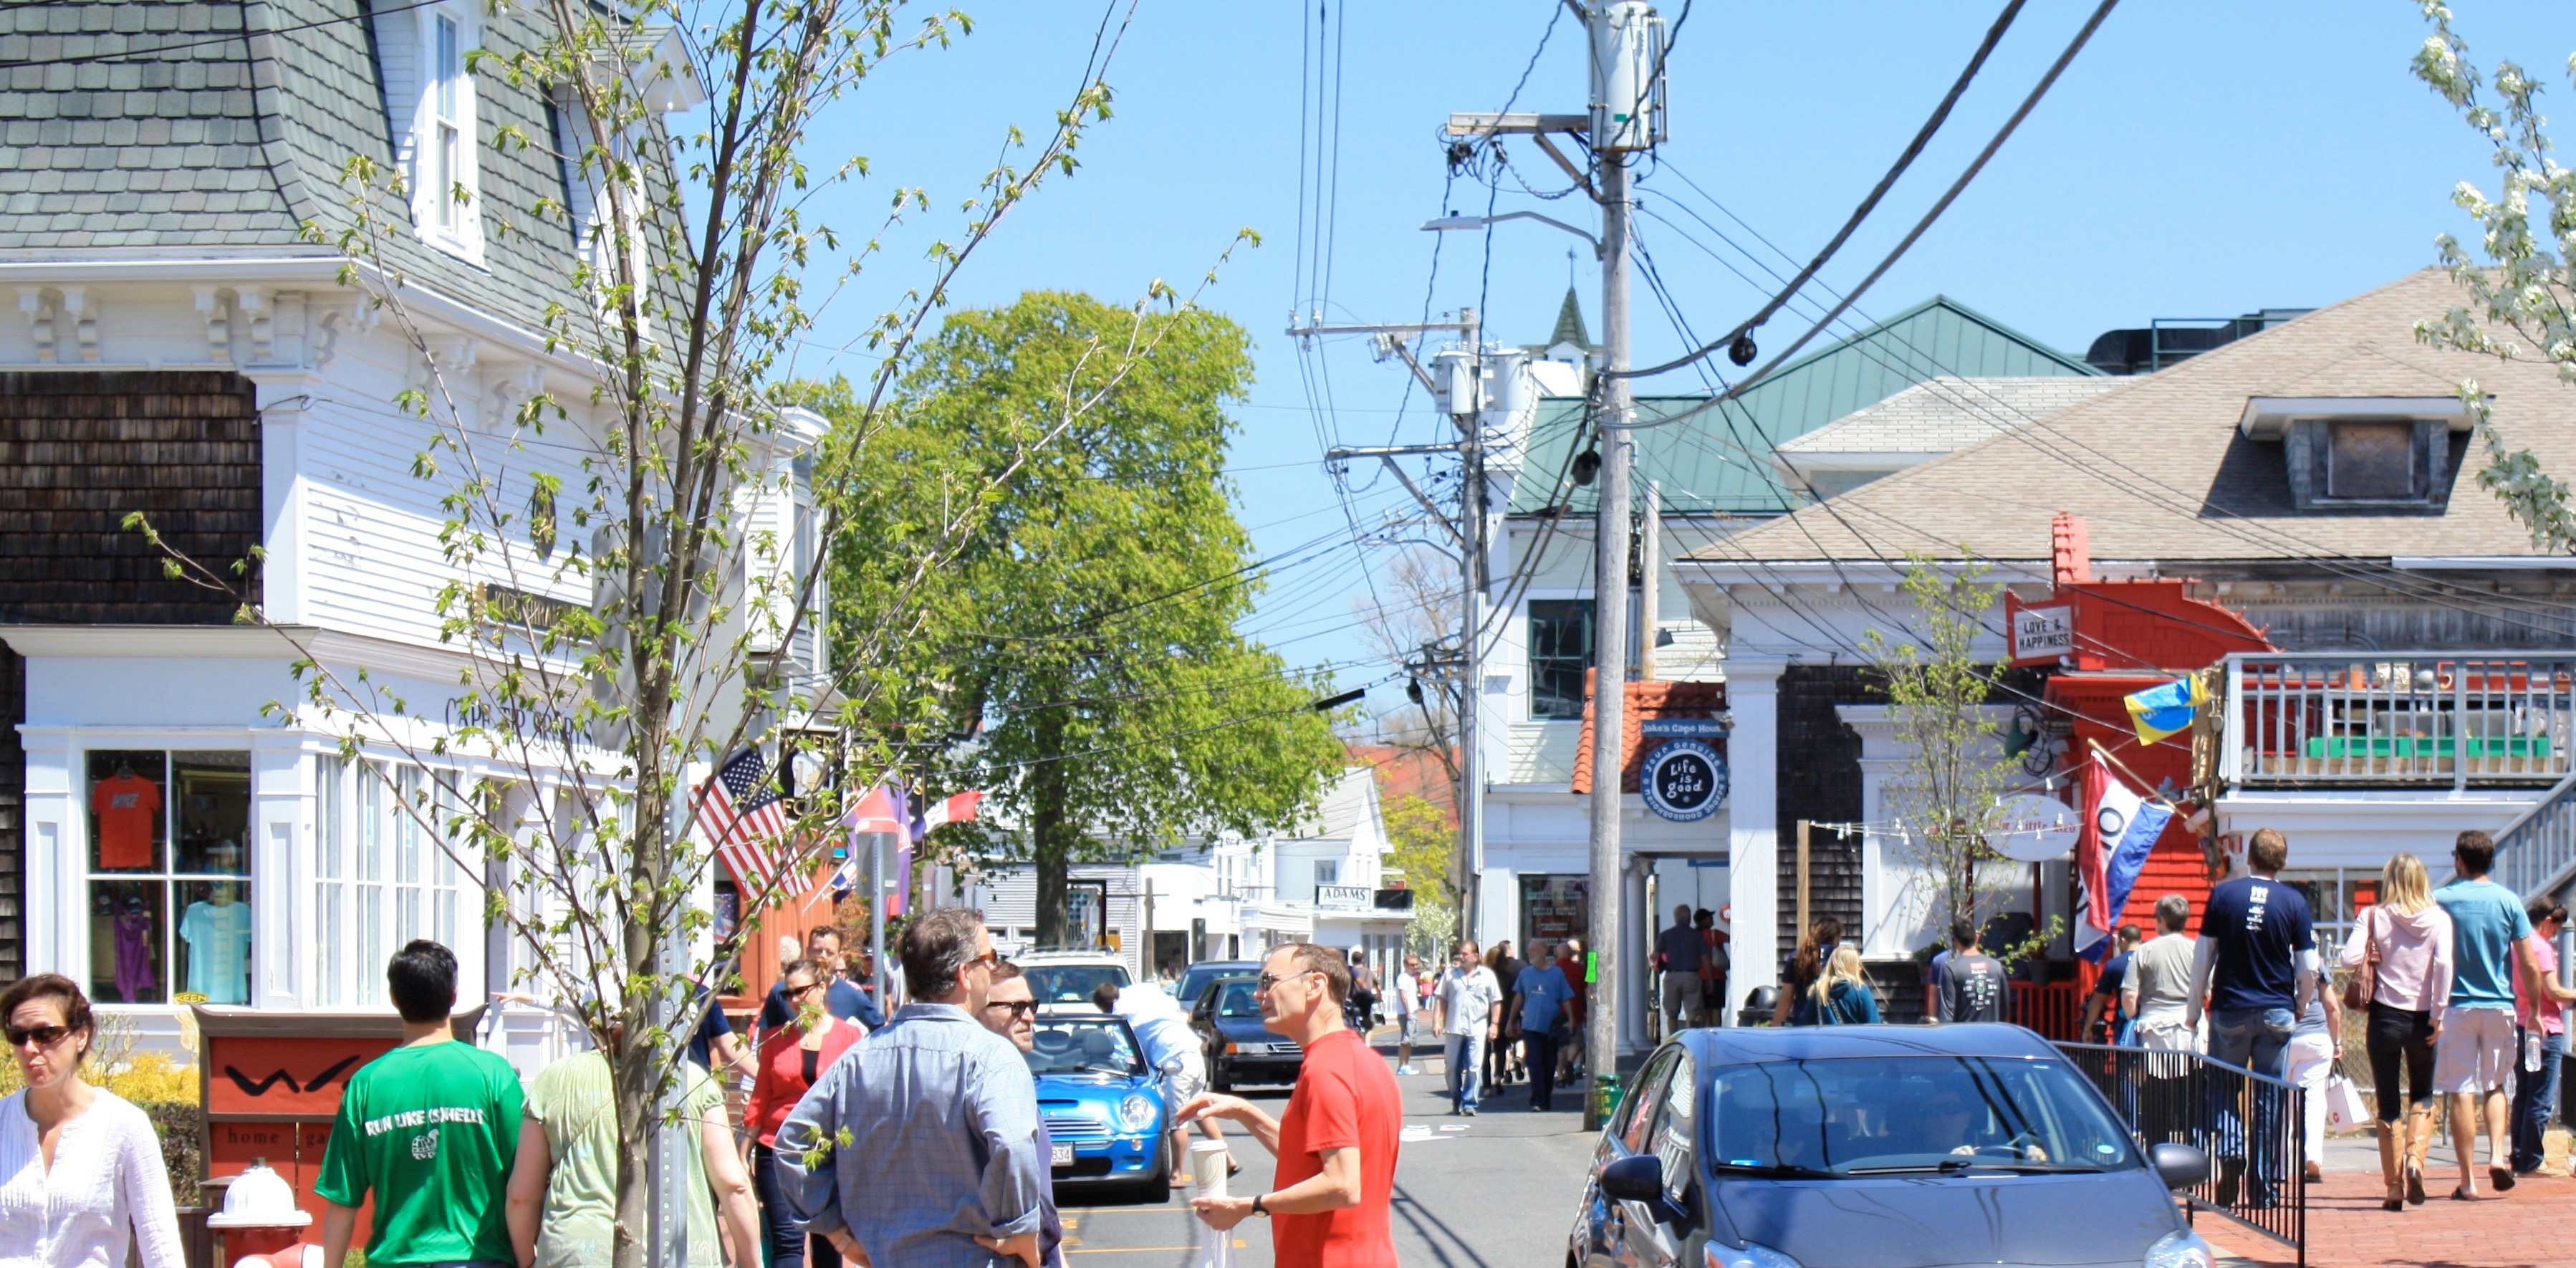 Top 5 things to do on cape cod the platinum pebble - What is a cape cod ...